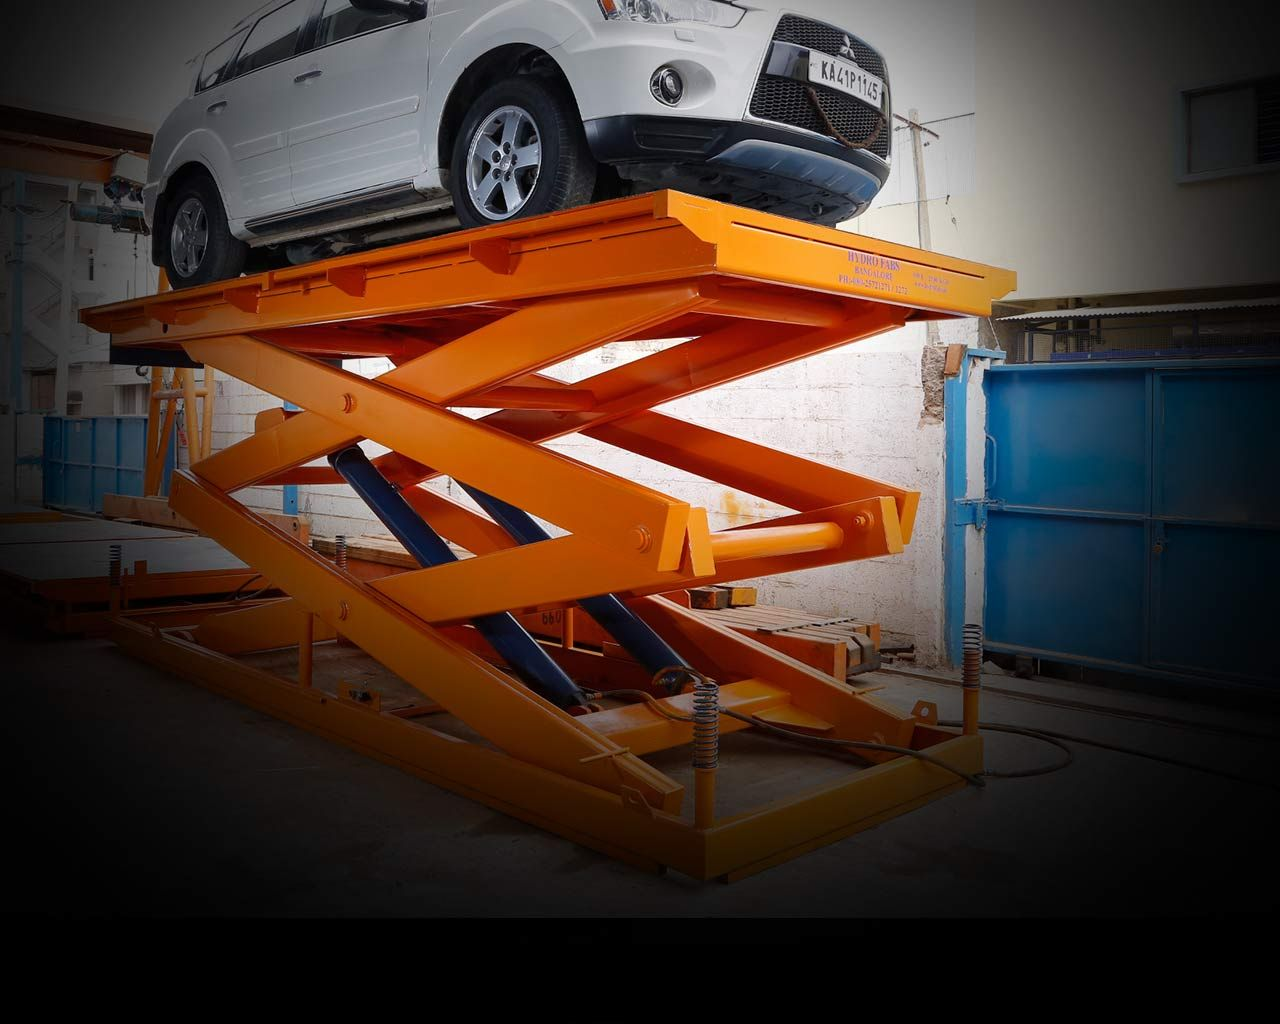 Hydraulic Scissor Lift Manufacturers Exporters and Suppliers in Bangalore. Hydraulic Lifts offered by Hydro Fabs are the best in market. & Hydraulic Scissor Lift Manufacturers Exporters and Suppliers in ...